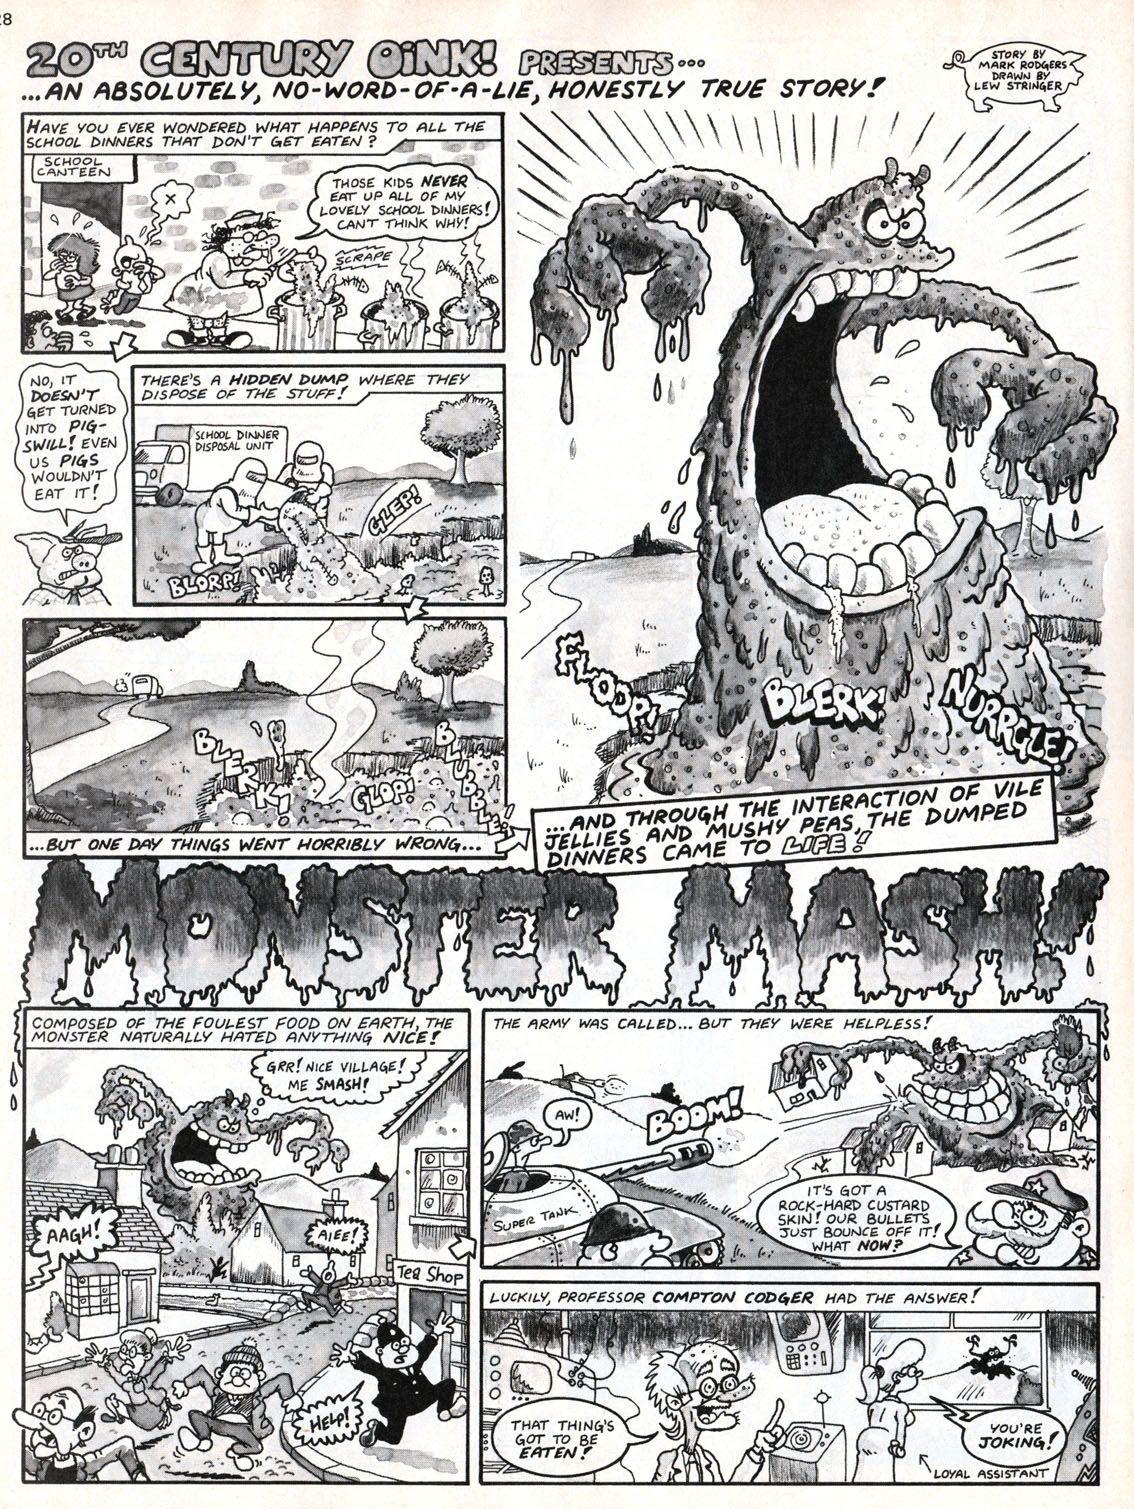 blimey! the blog of british comics: for halloween monster mash!